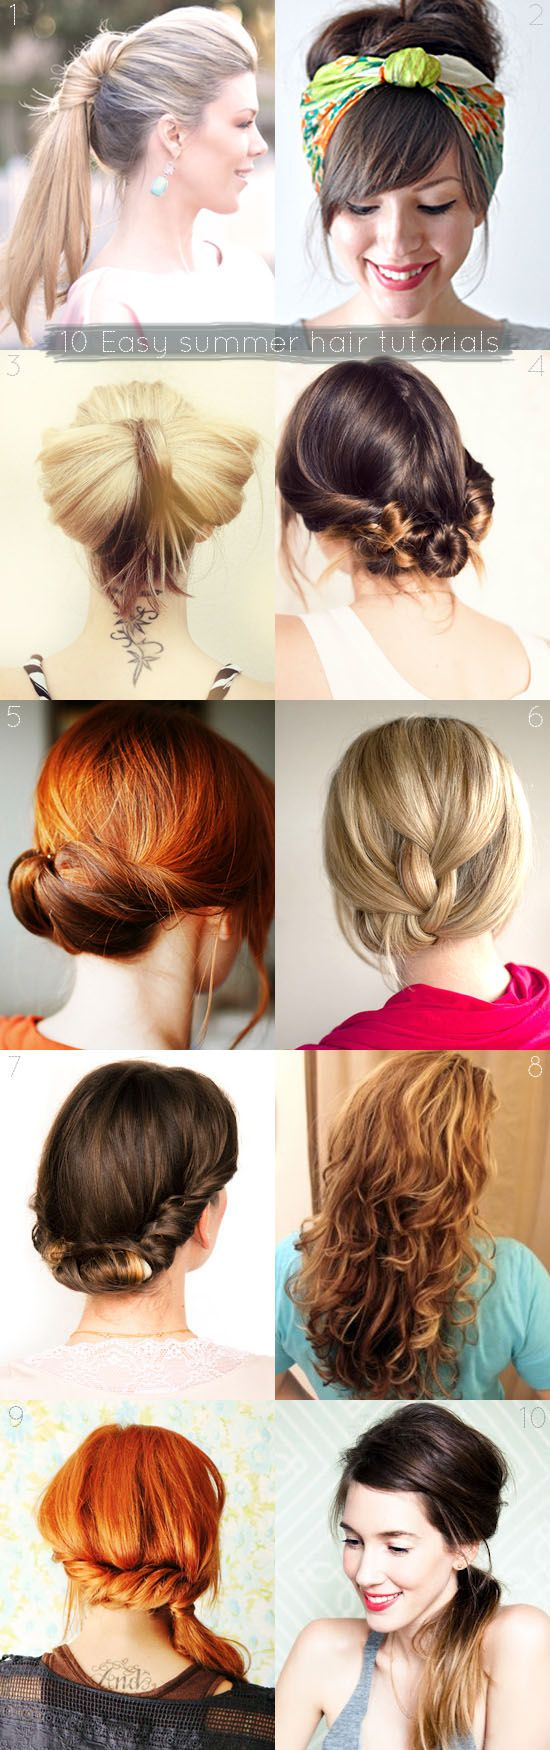 easy summer hair tutorials by wilma beauty its a powerful